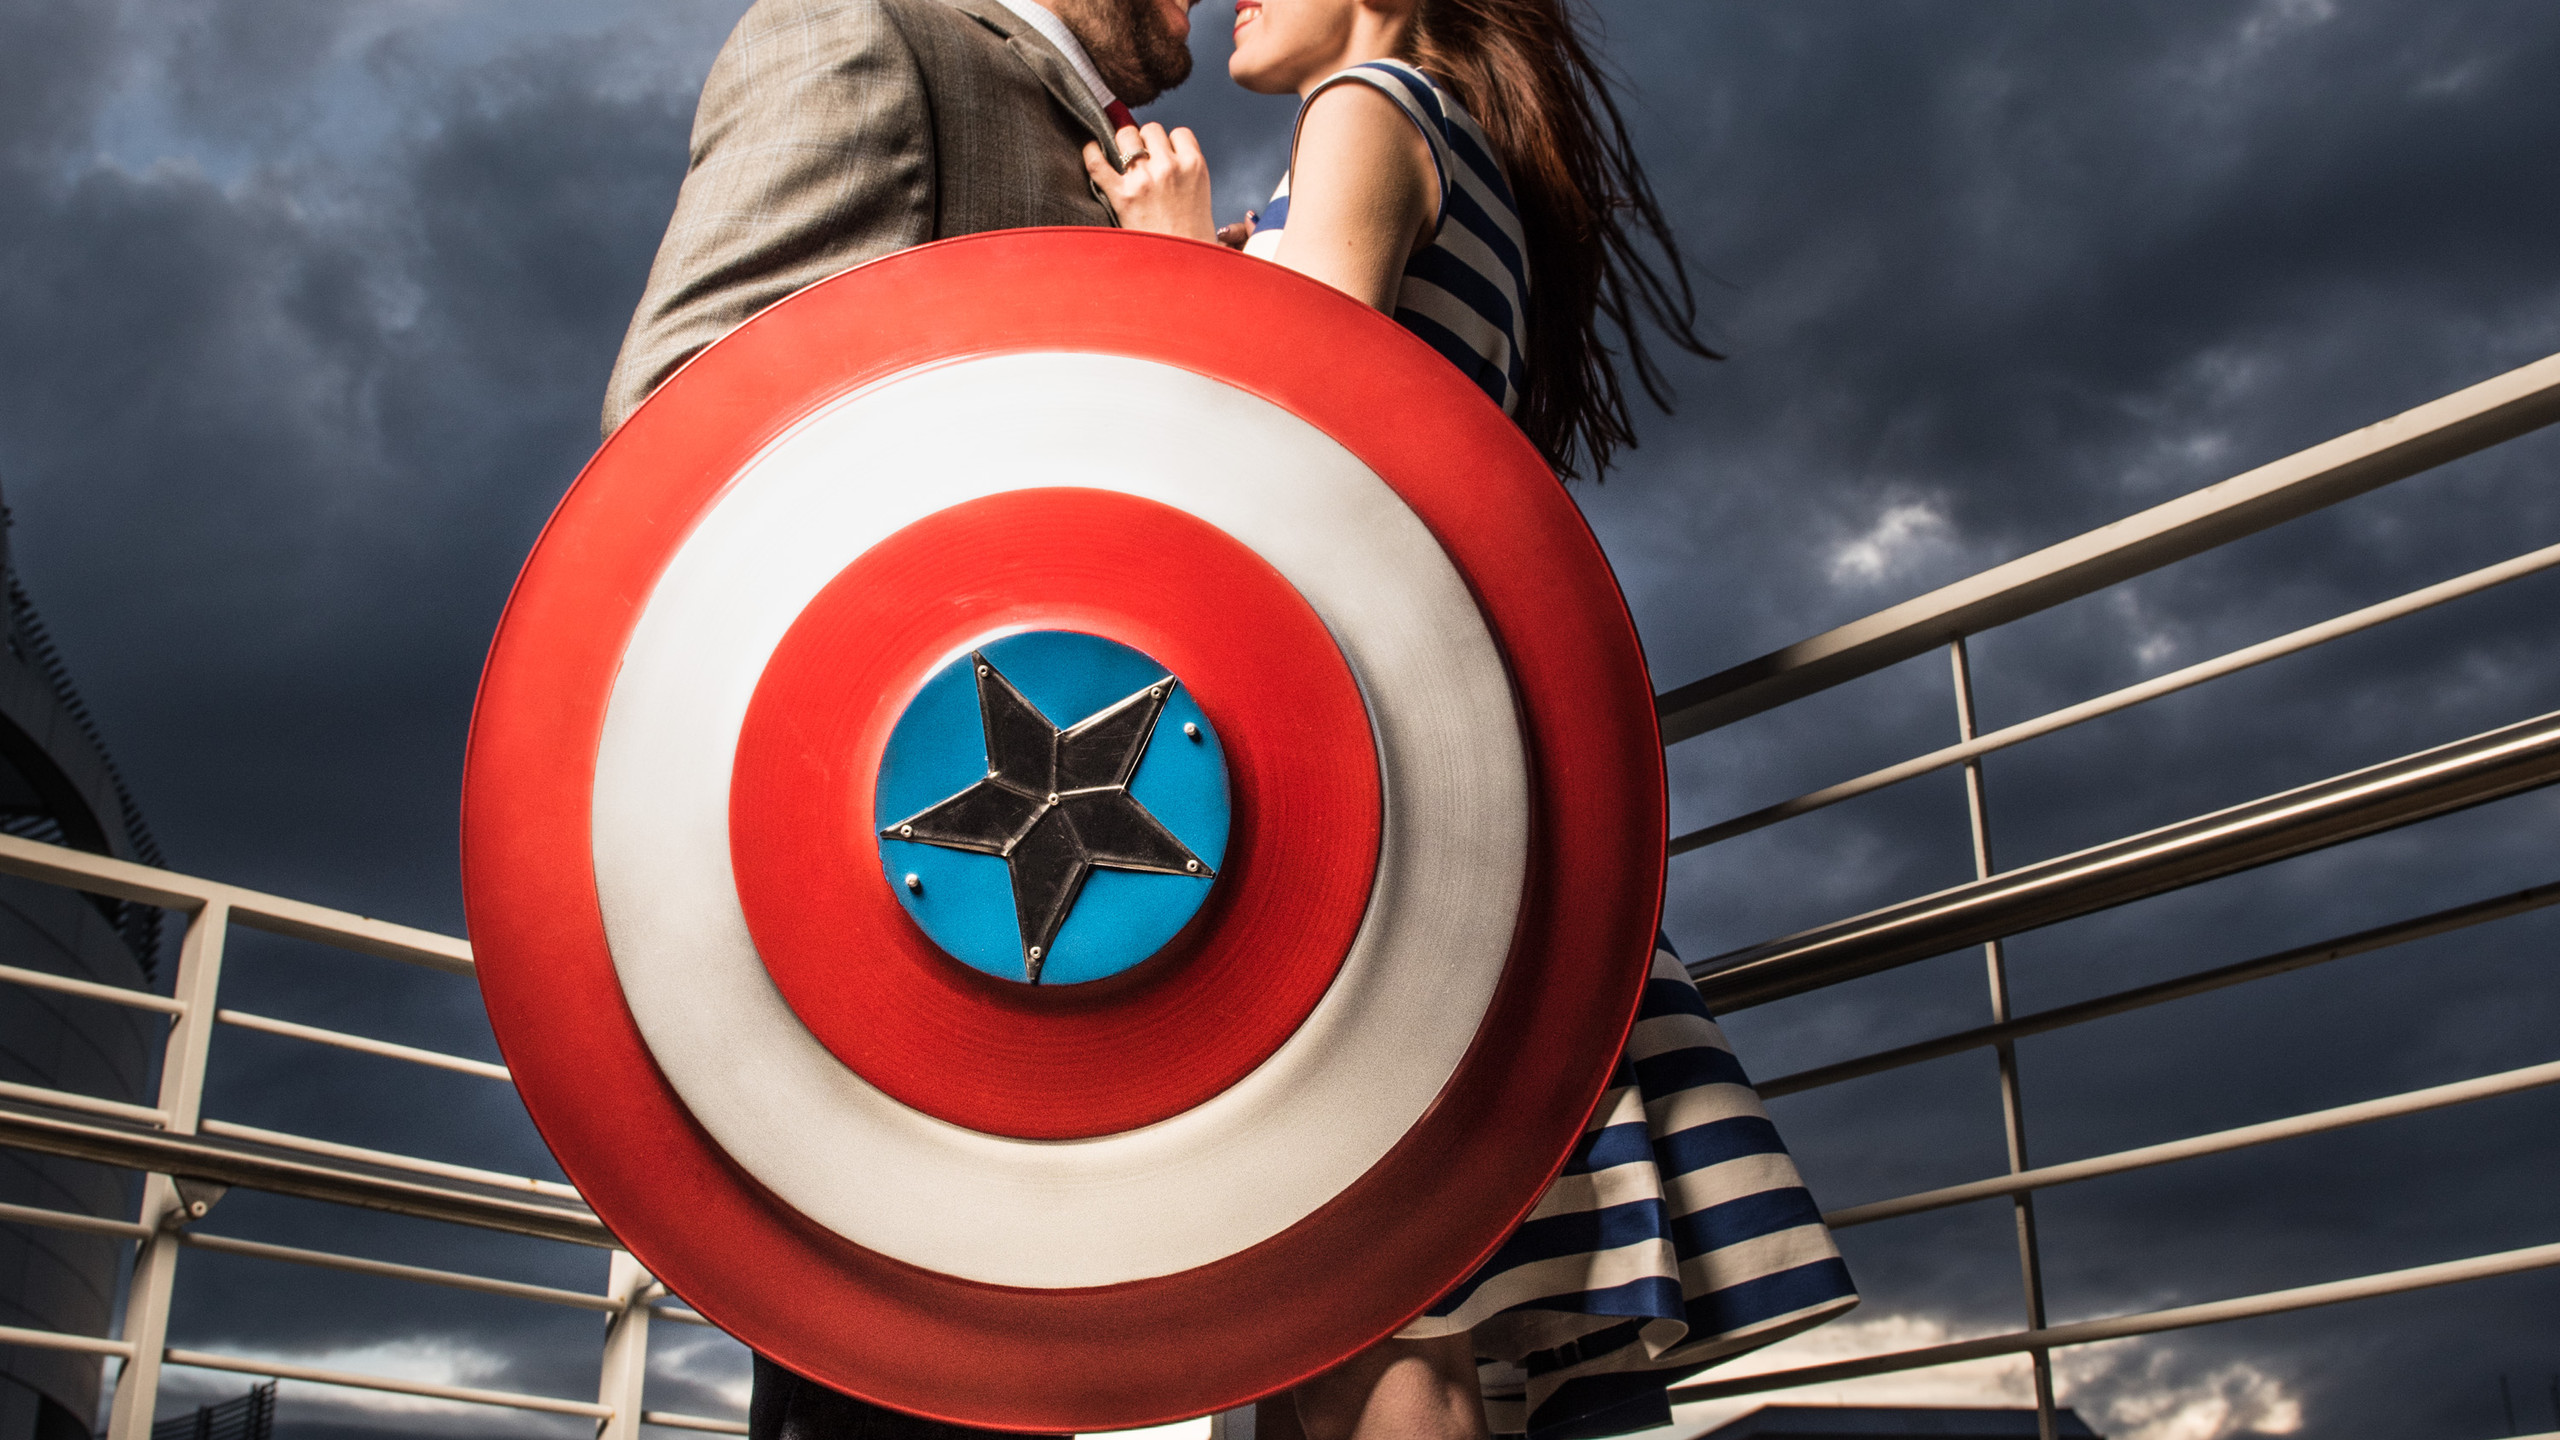 Captain America Themed Engagement Shoot via The VIParolaz by Blurred Lines Photography